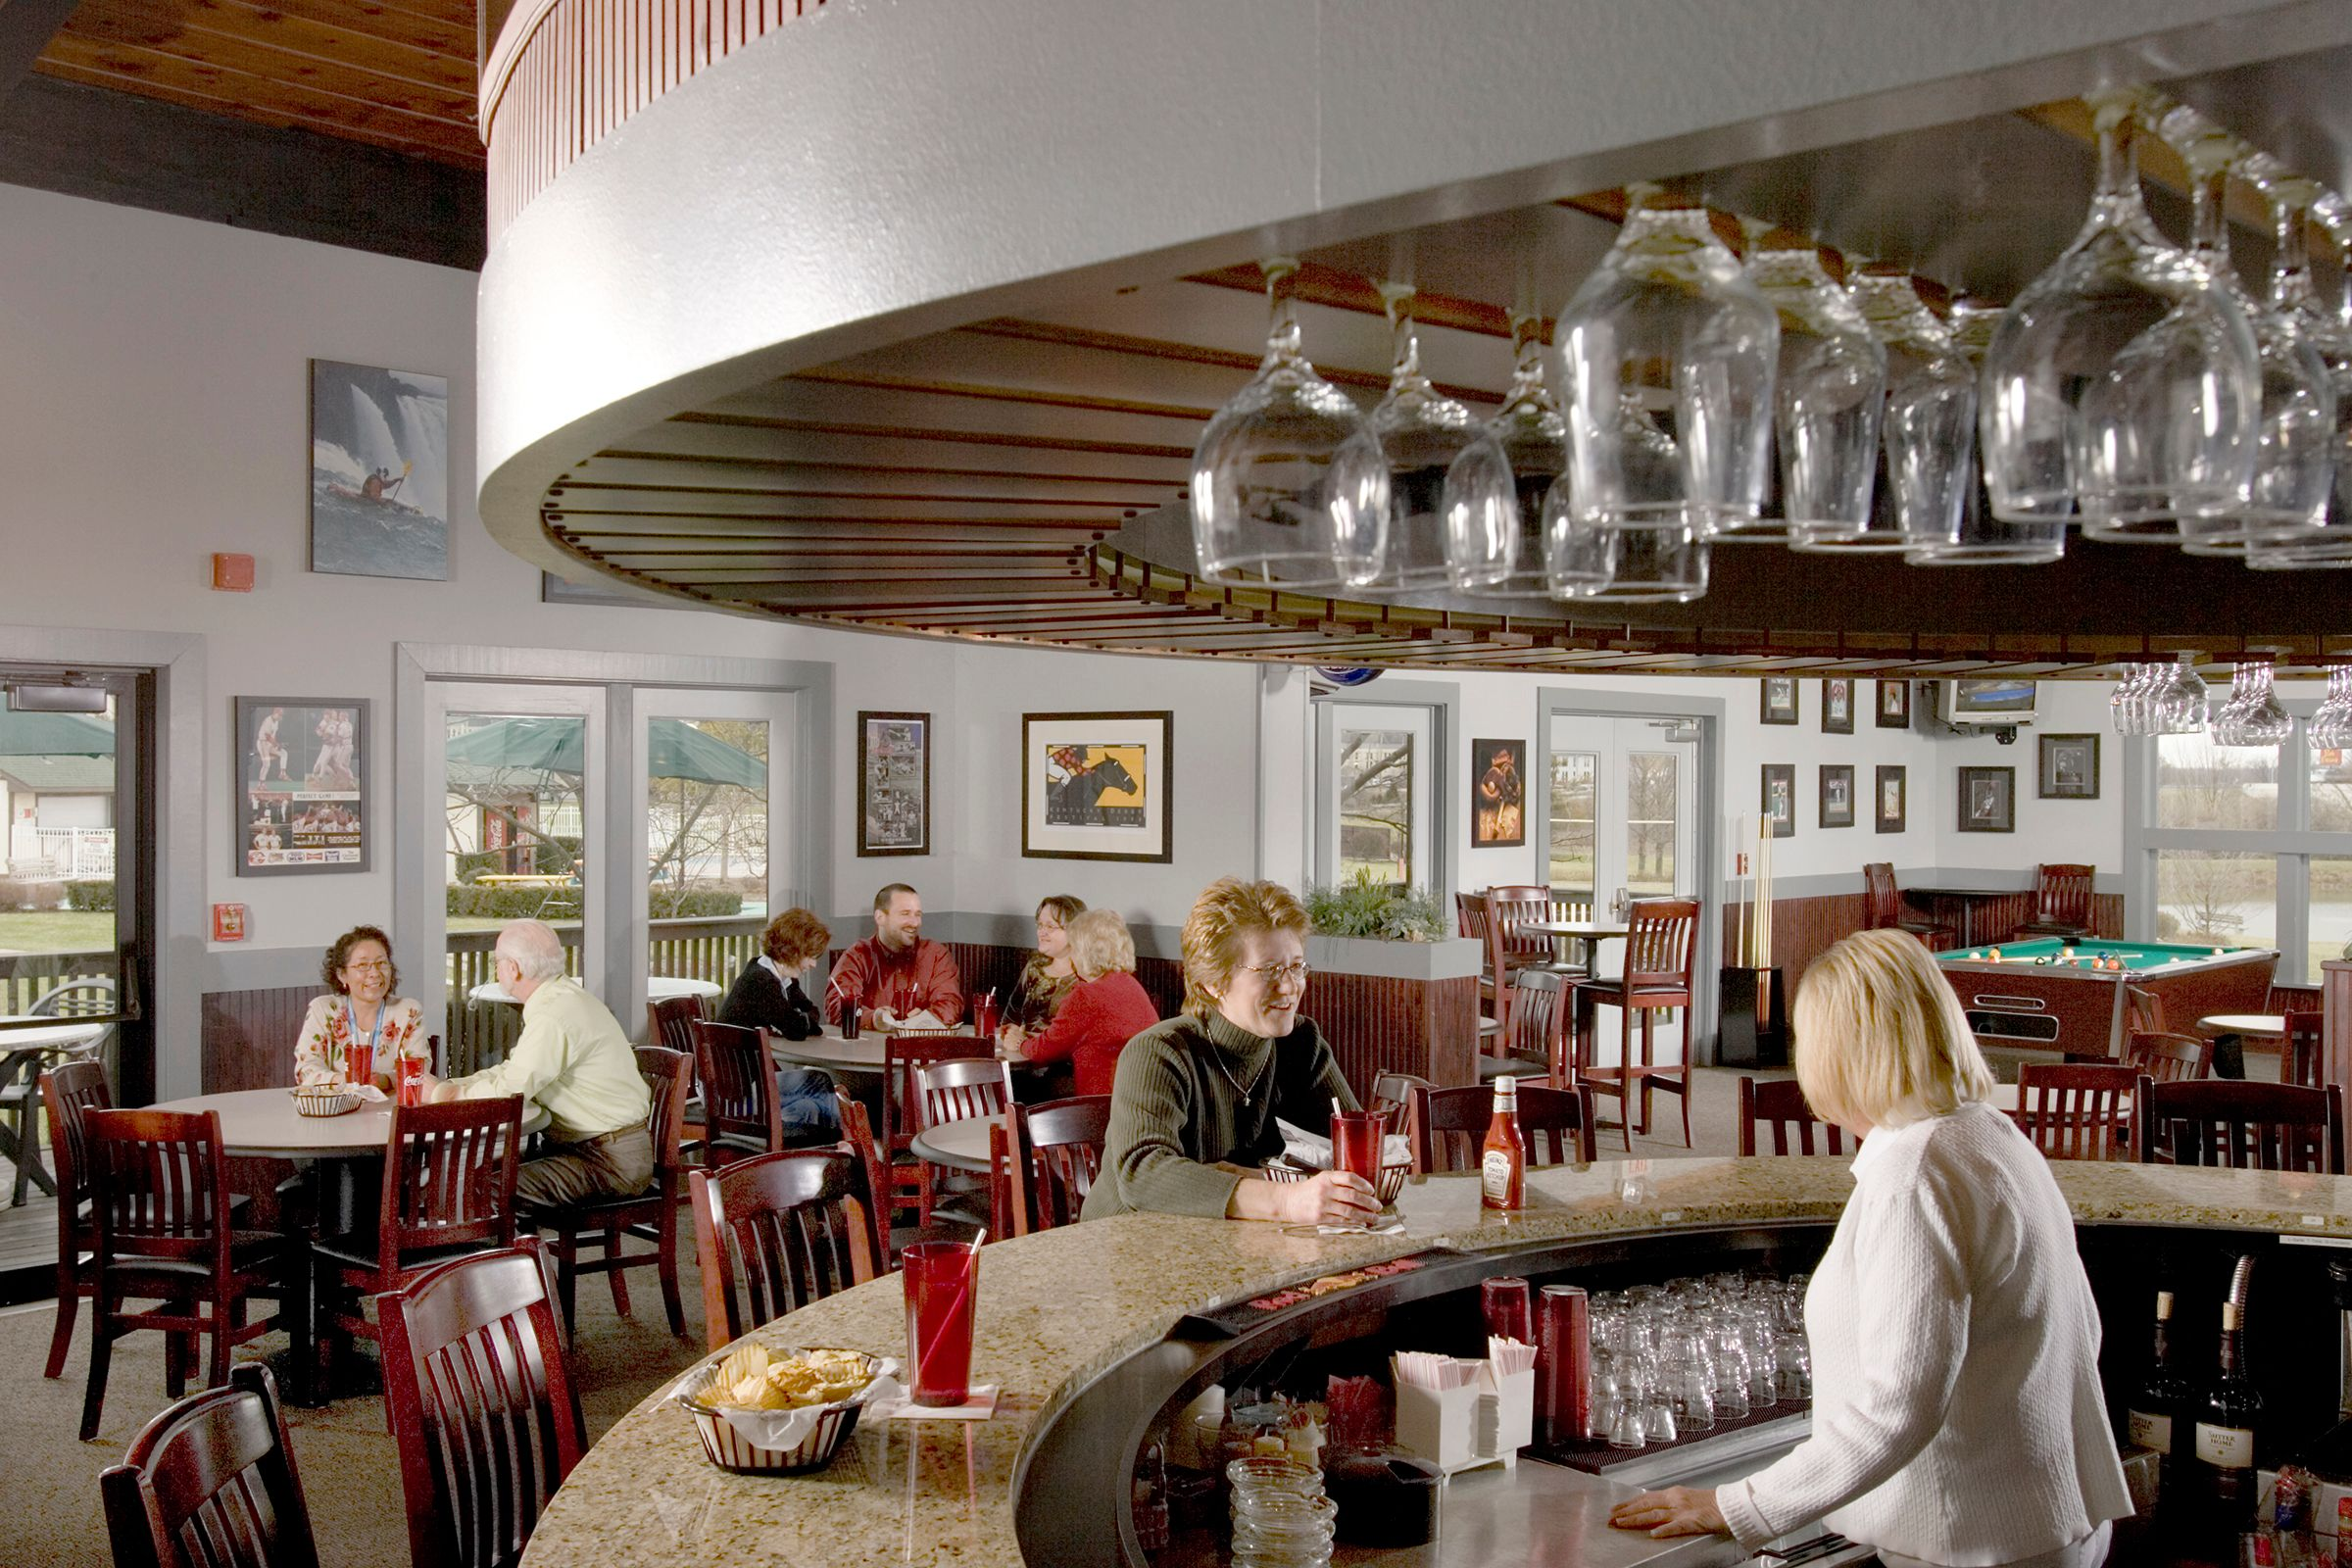 Architectural photographer Kings Island Resort bar